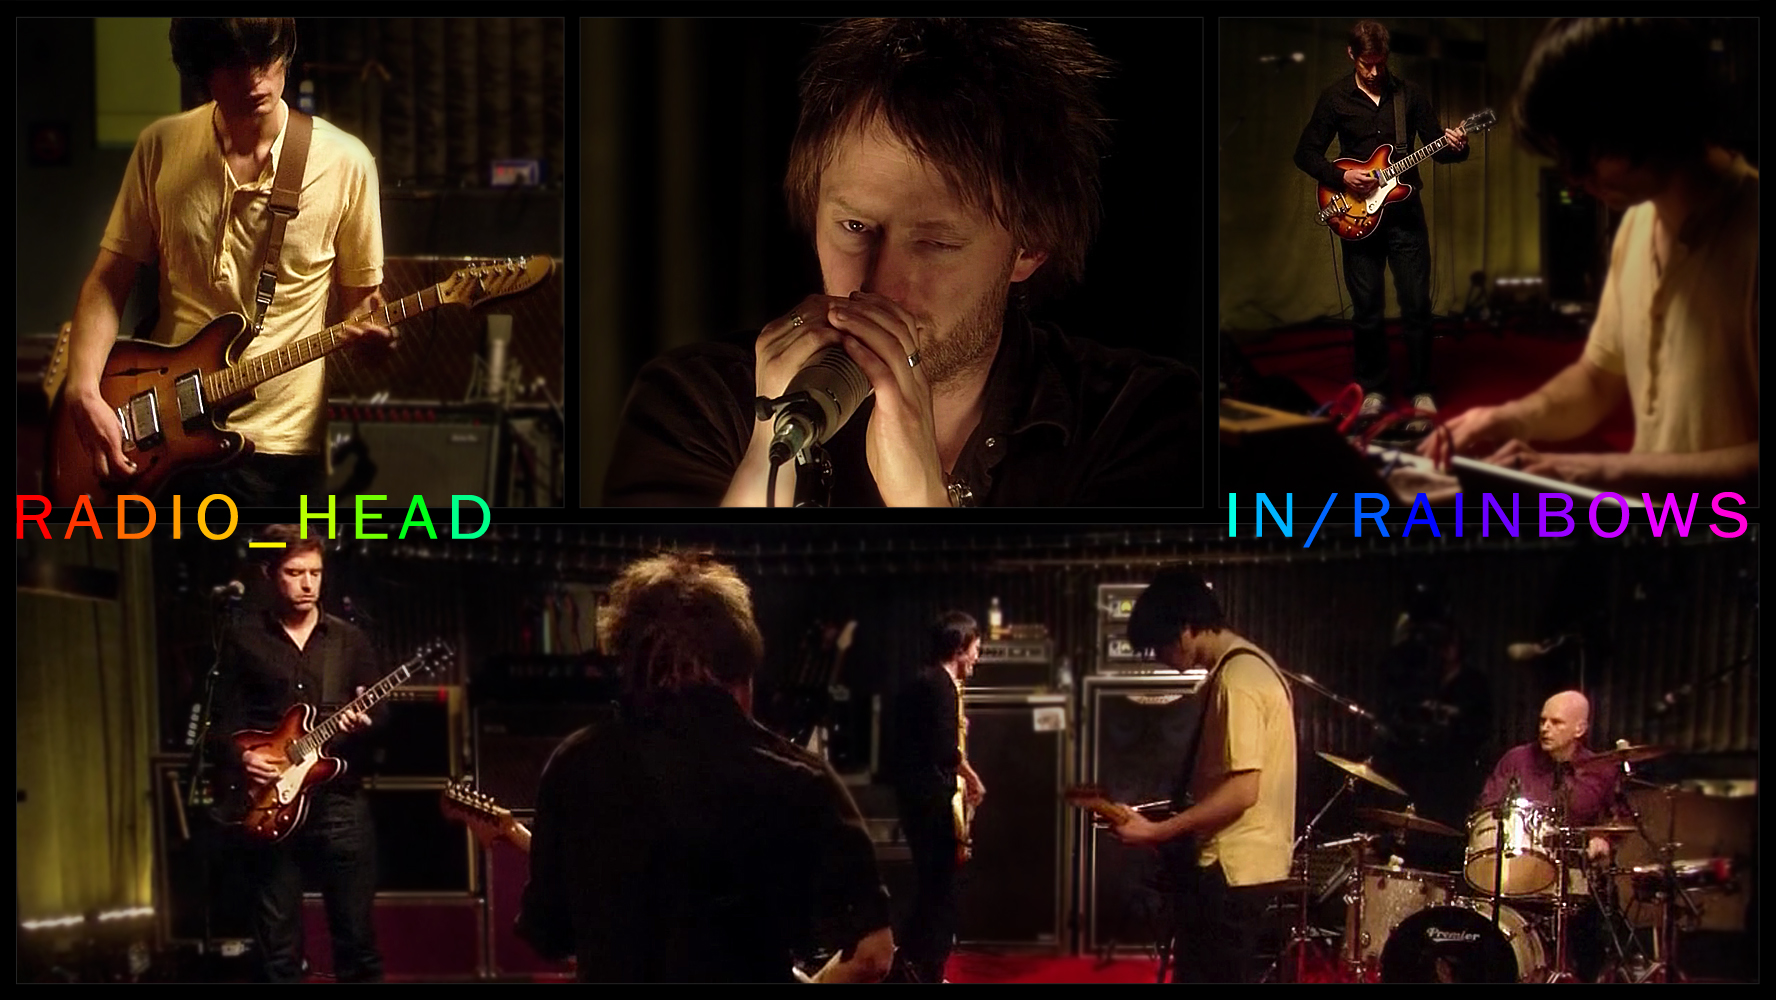 Radiohead Wallpaper In Rainbows